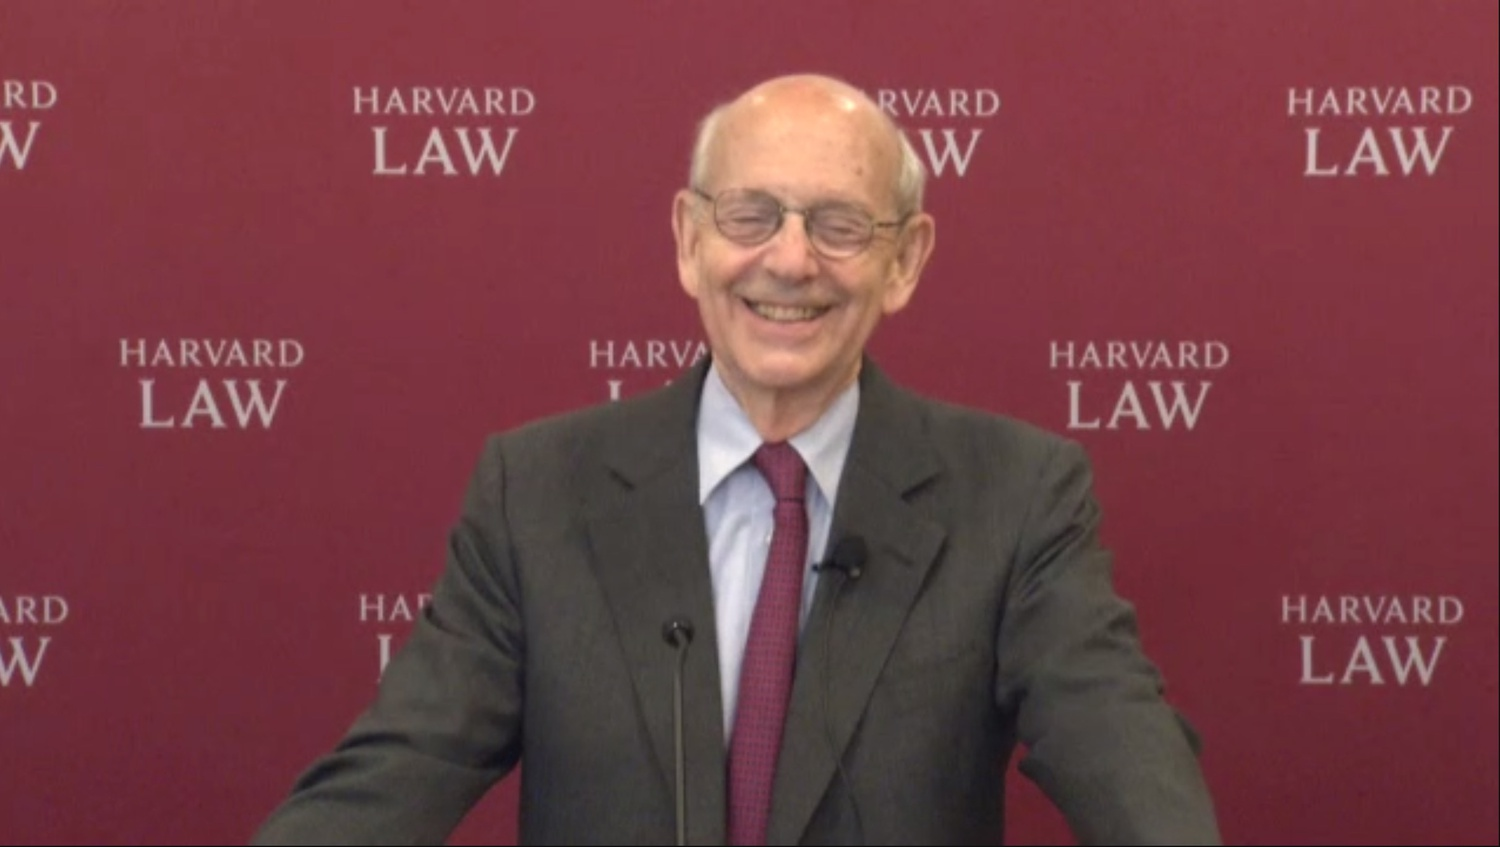 Supreme Court Justice Stephen G. Breyer spoke at Harvard Law School's annual Scalia Lecture Tuesday.